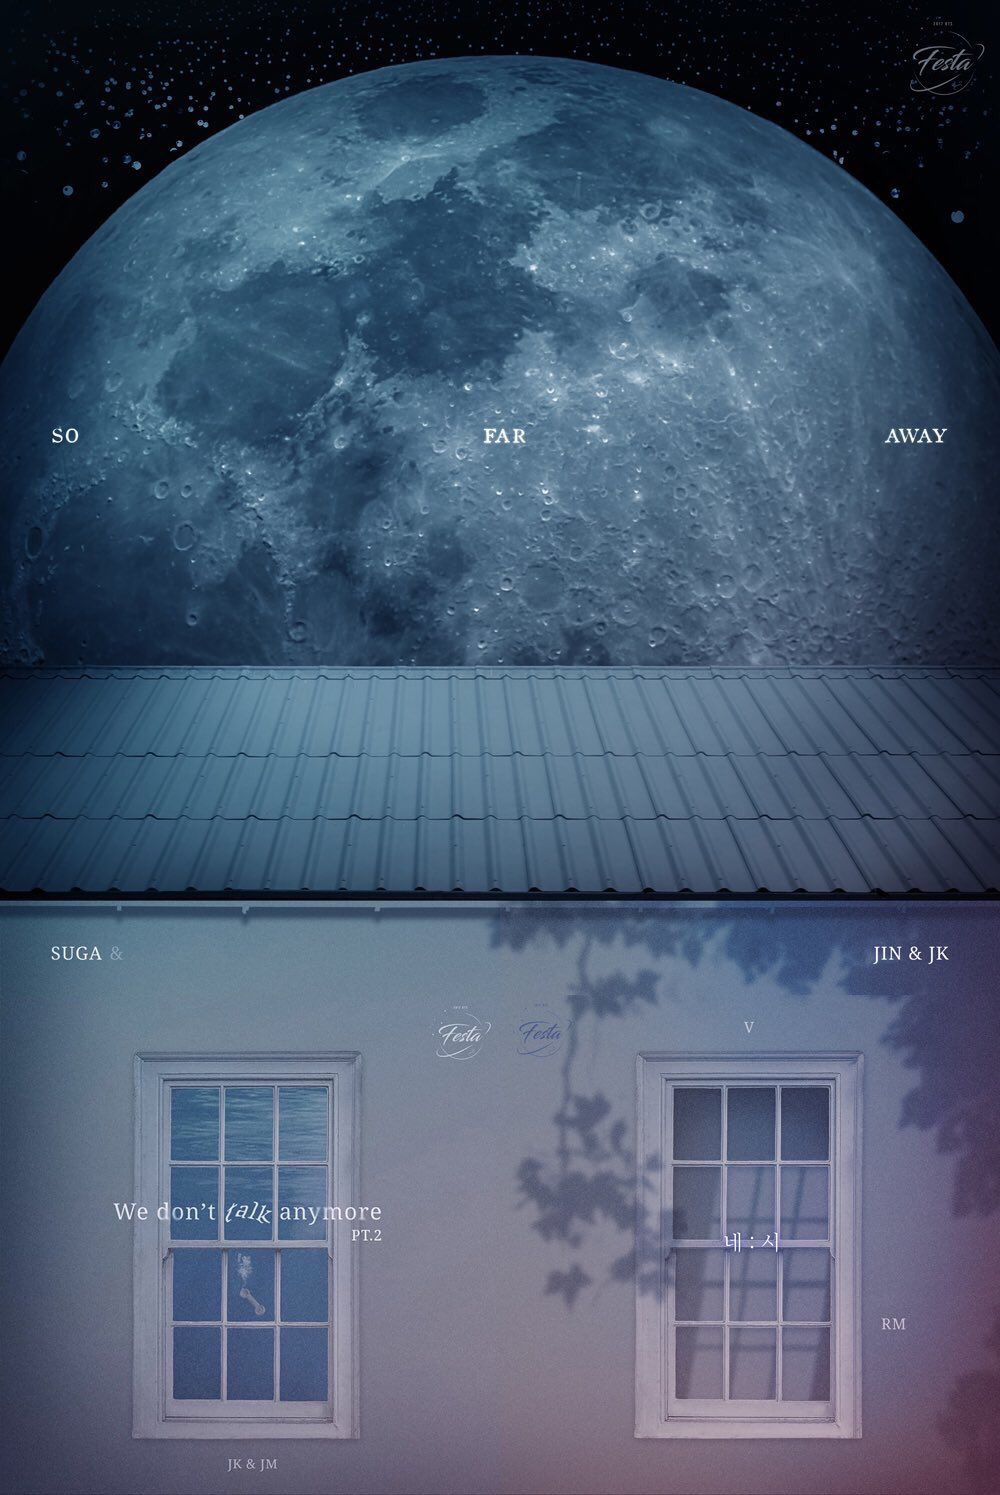 ARMY Bombs as stars behind the moon ㅠㅠㅠㅠㅠ We'll forever be the stars in your galaxy �� @BTS_twt https://t.co/fMBO0d7Ykr